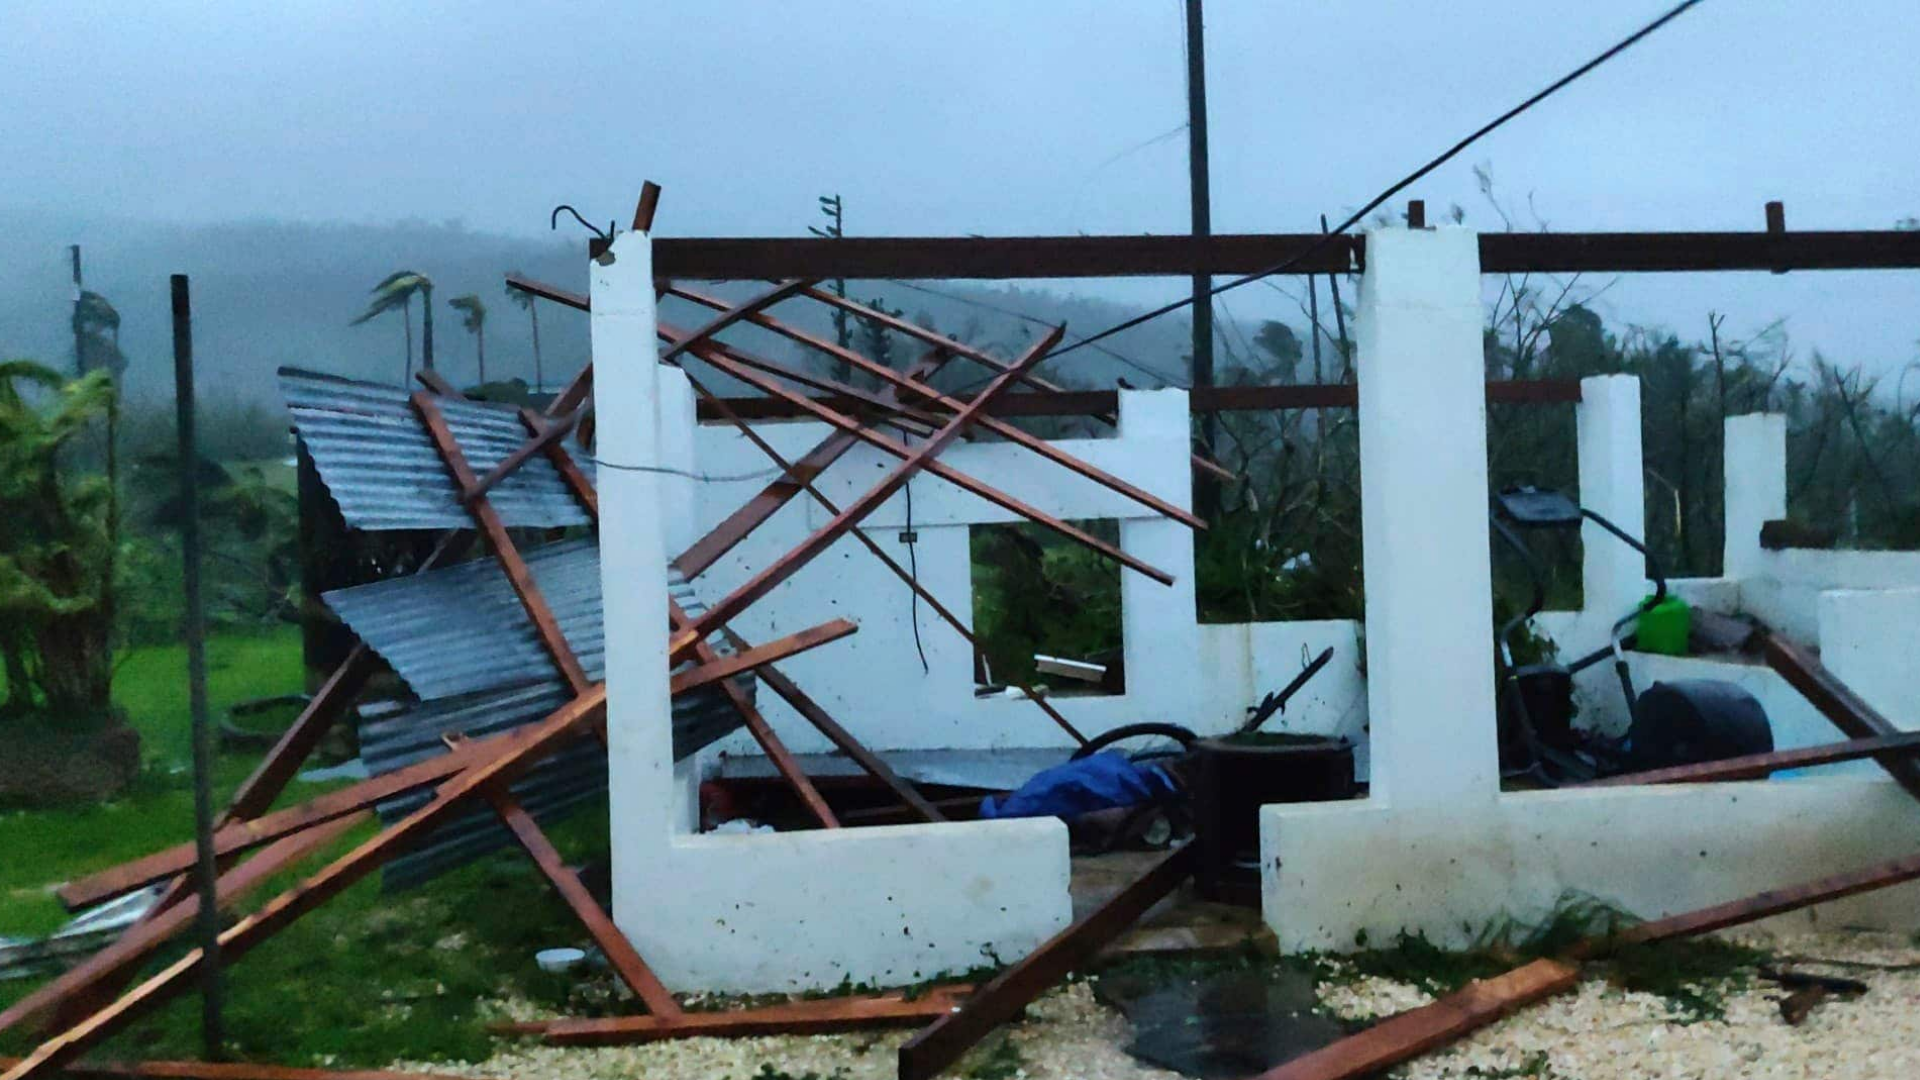 Extreme Category 5 typhoon, the worst U.S. storm since 1935, leaves Northern Mariana Islands devastated